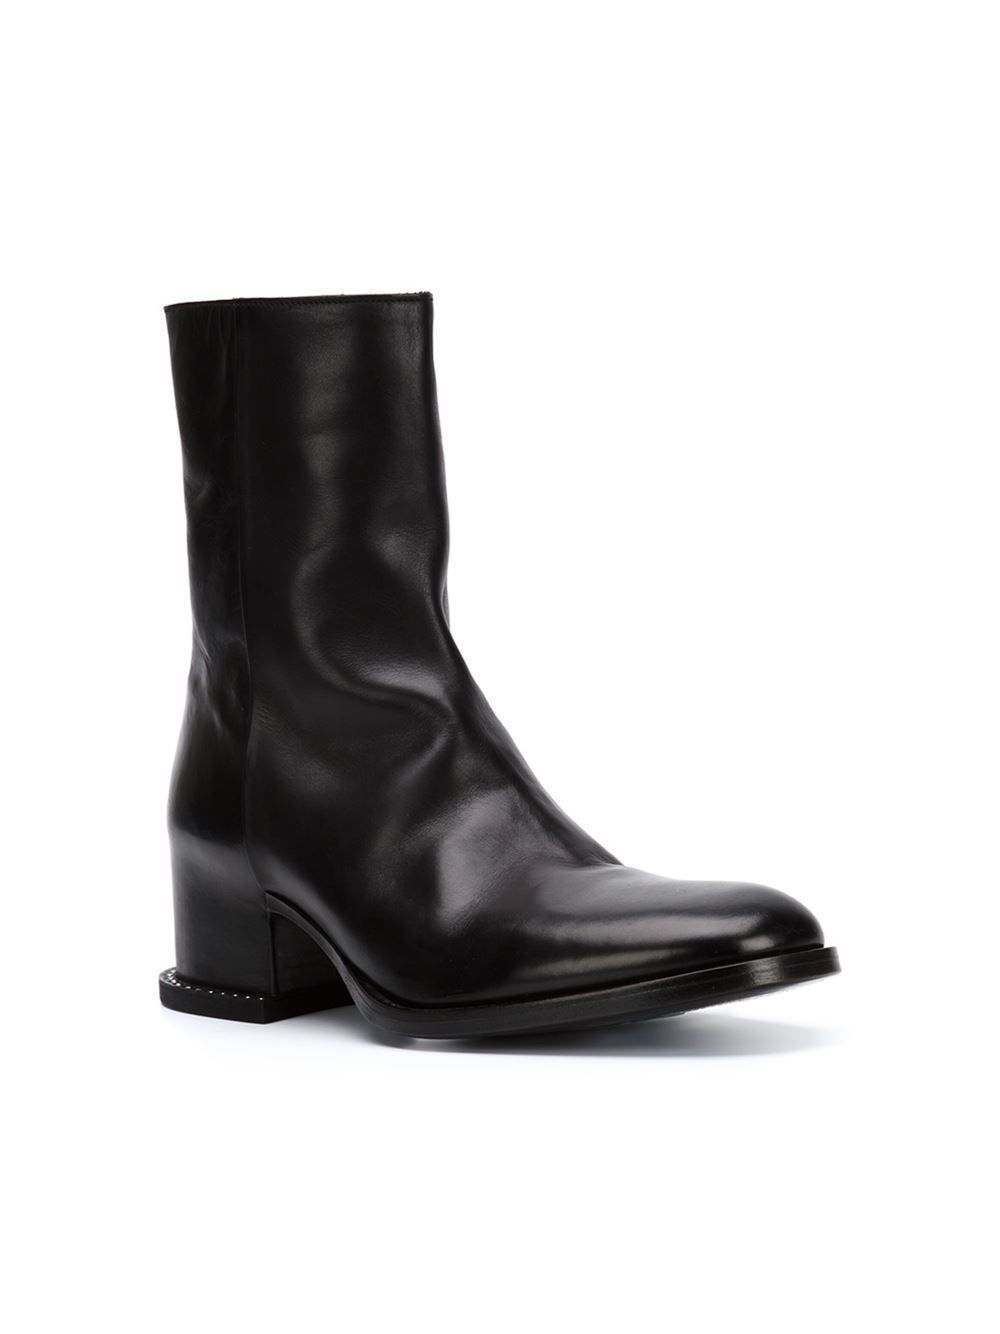 Givenchy Concealed Heel Ankle Boots Tiziana Fausti